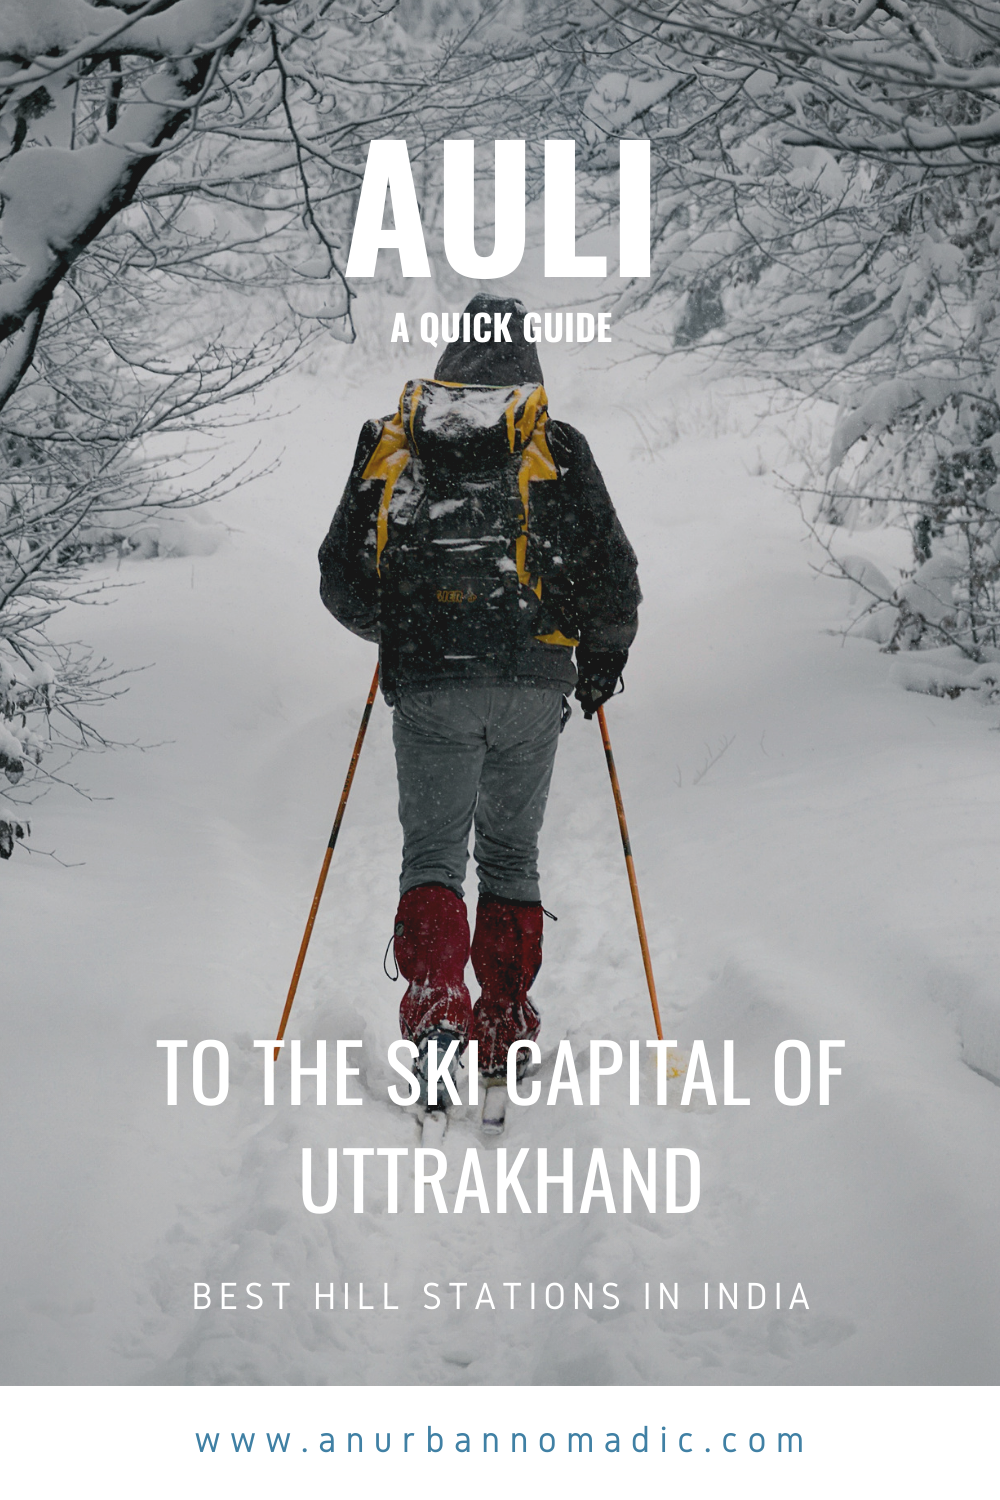 Auli Guide to the ski capital of Uttrakhand